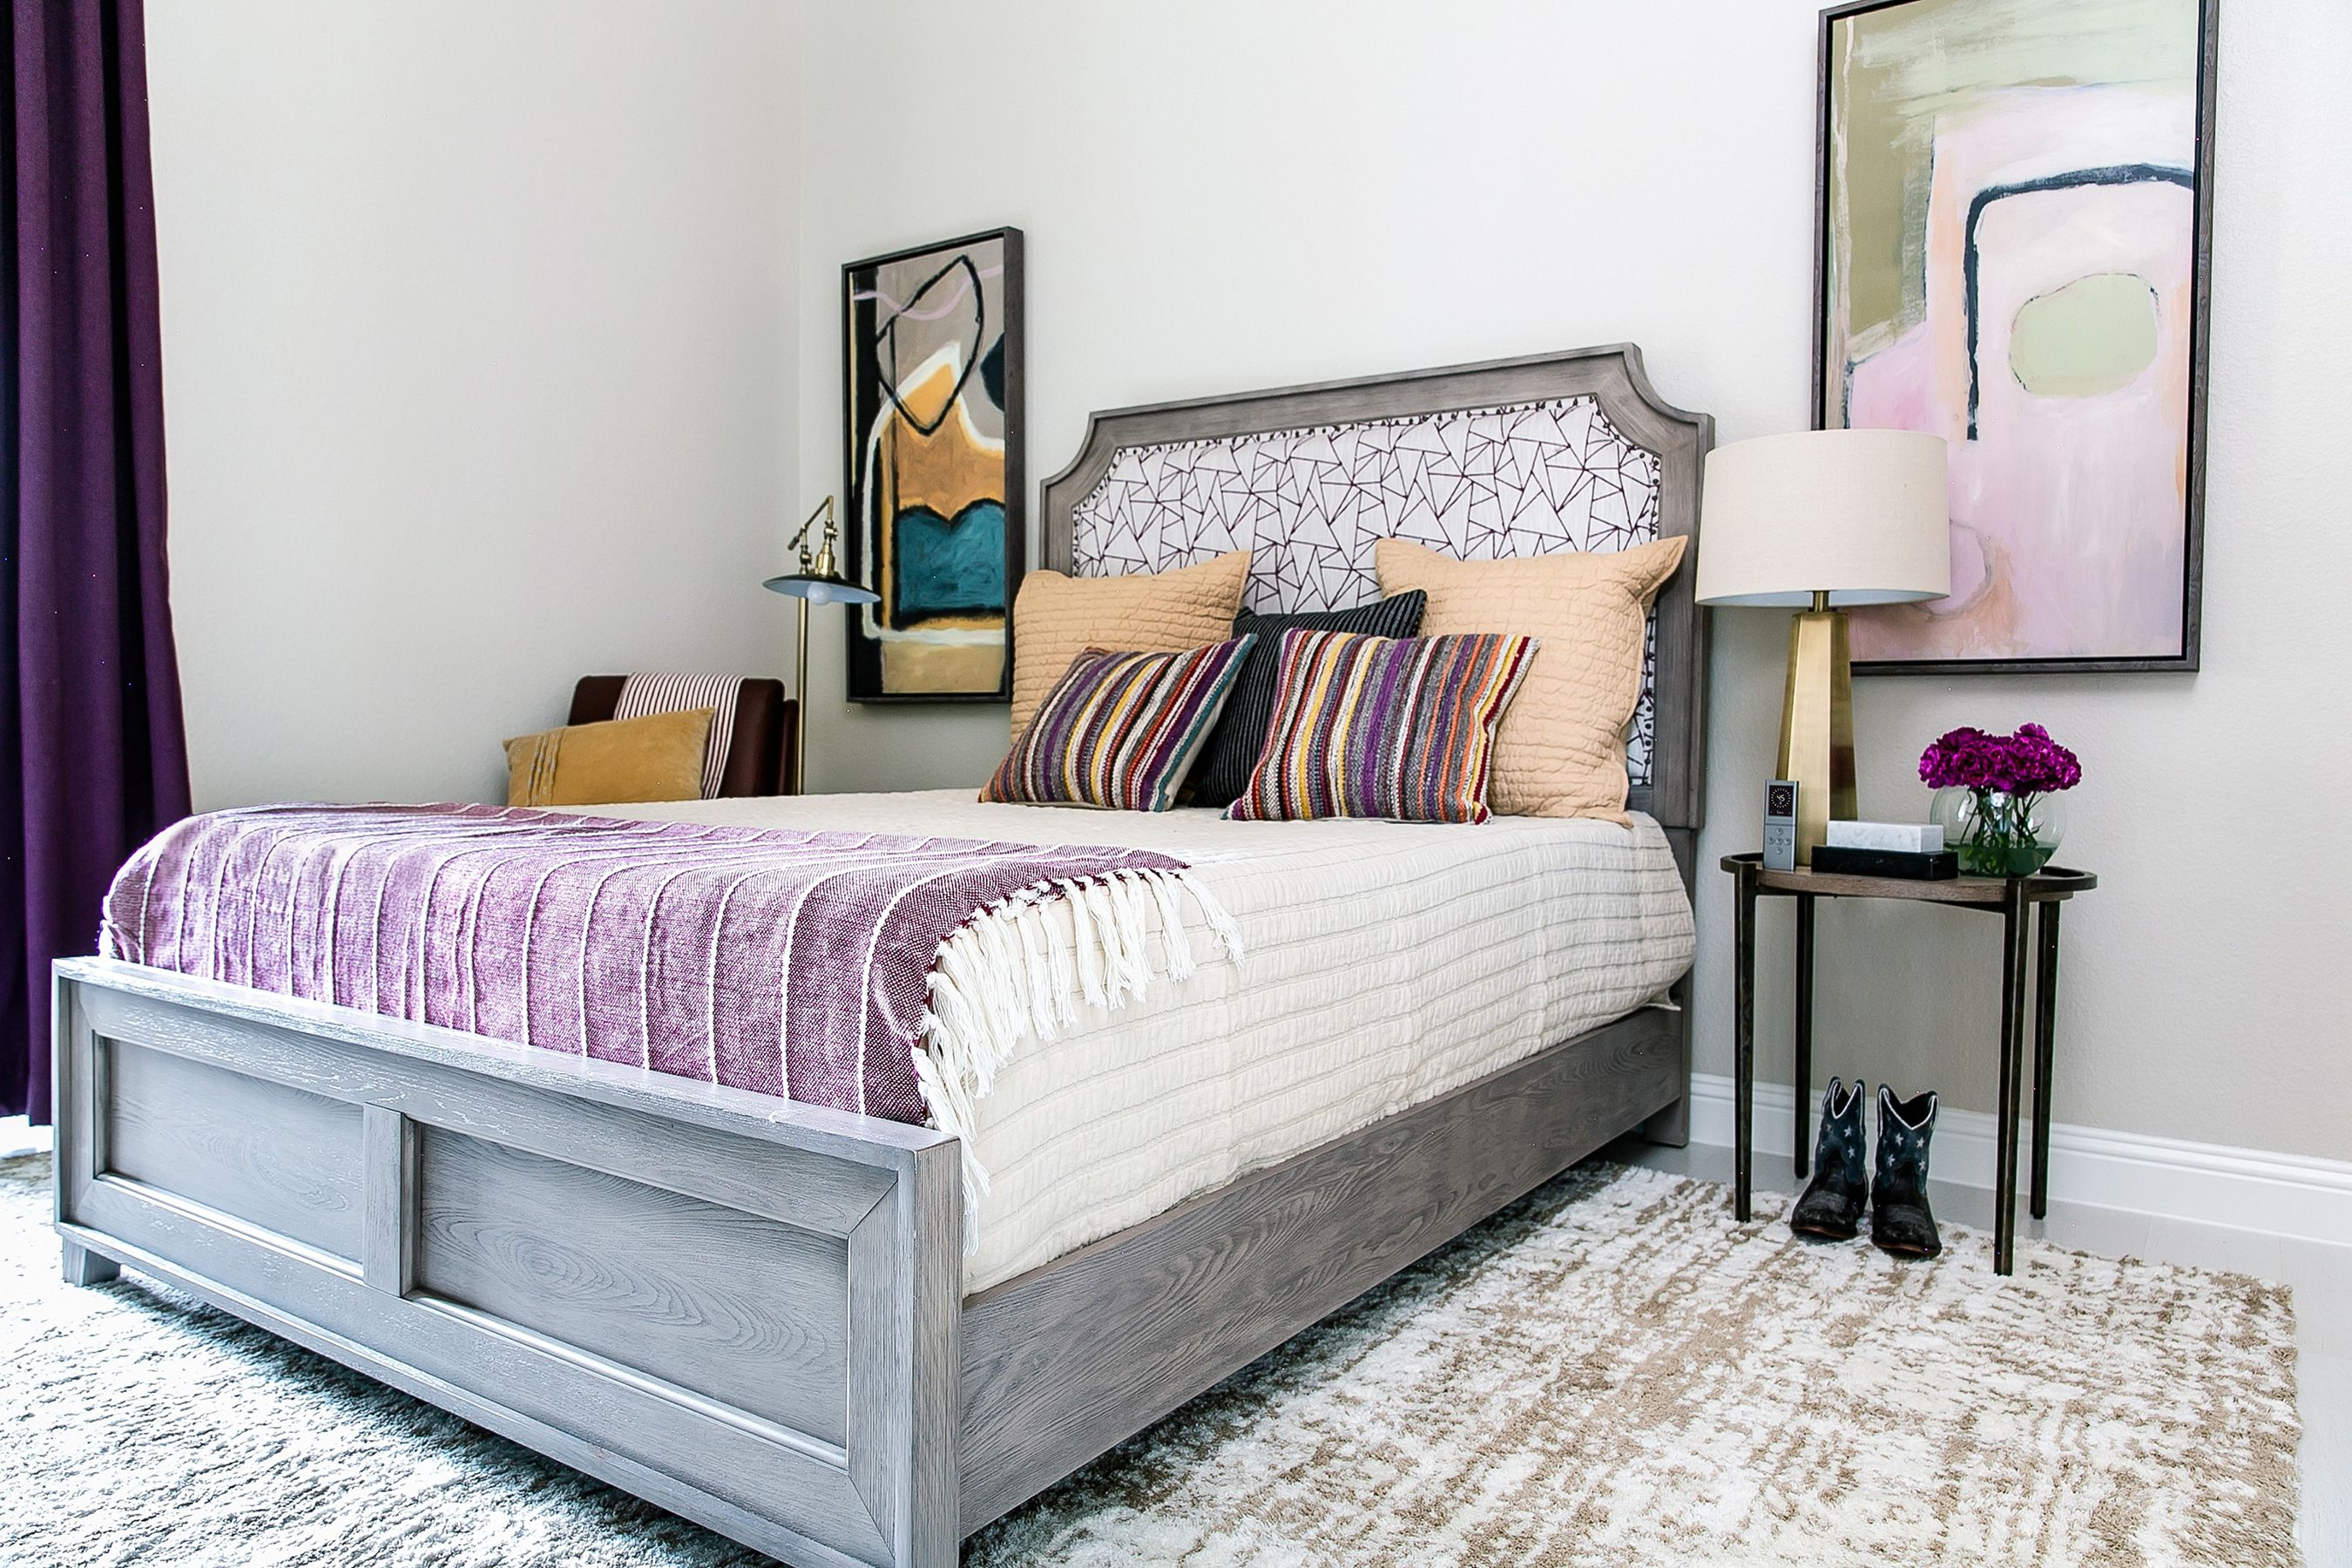 See Inside the 2019 HGTV Smart Home — and Learn How You